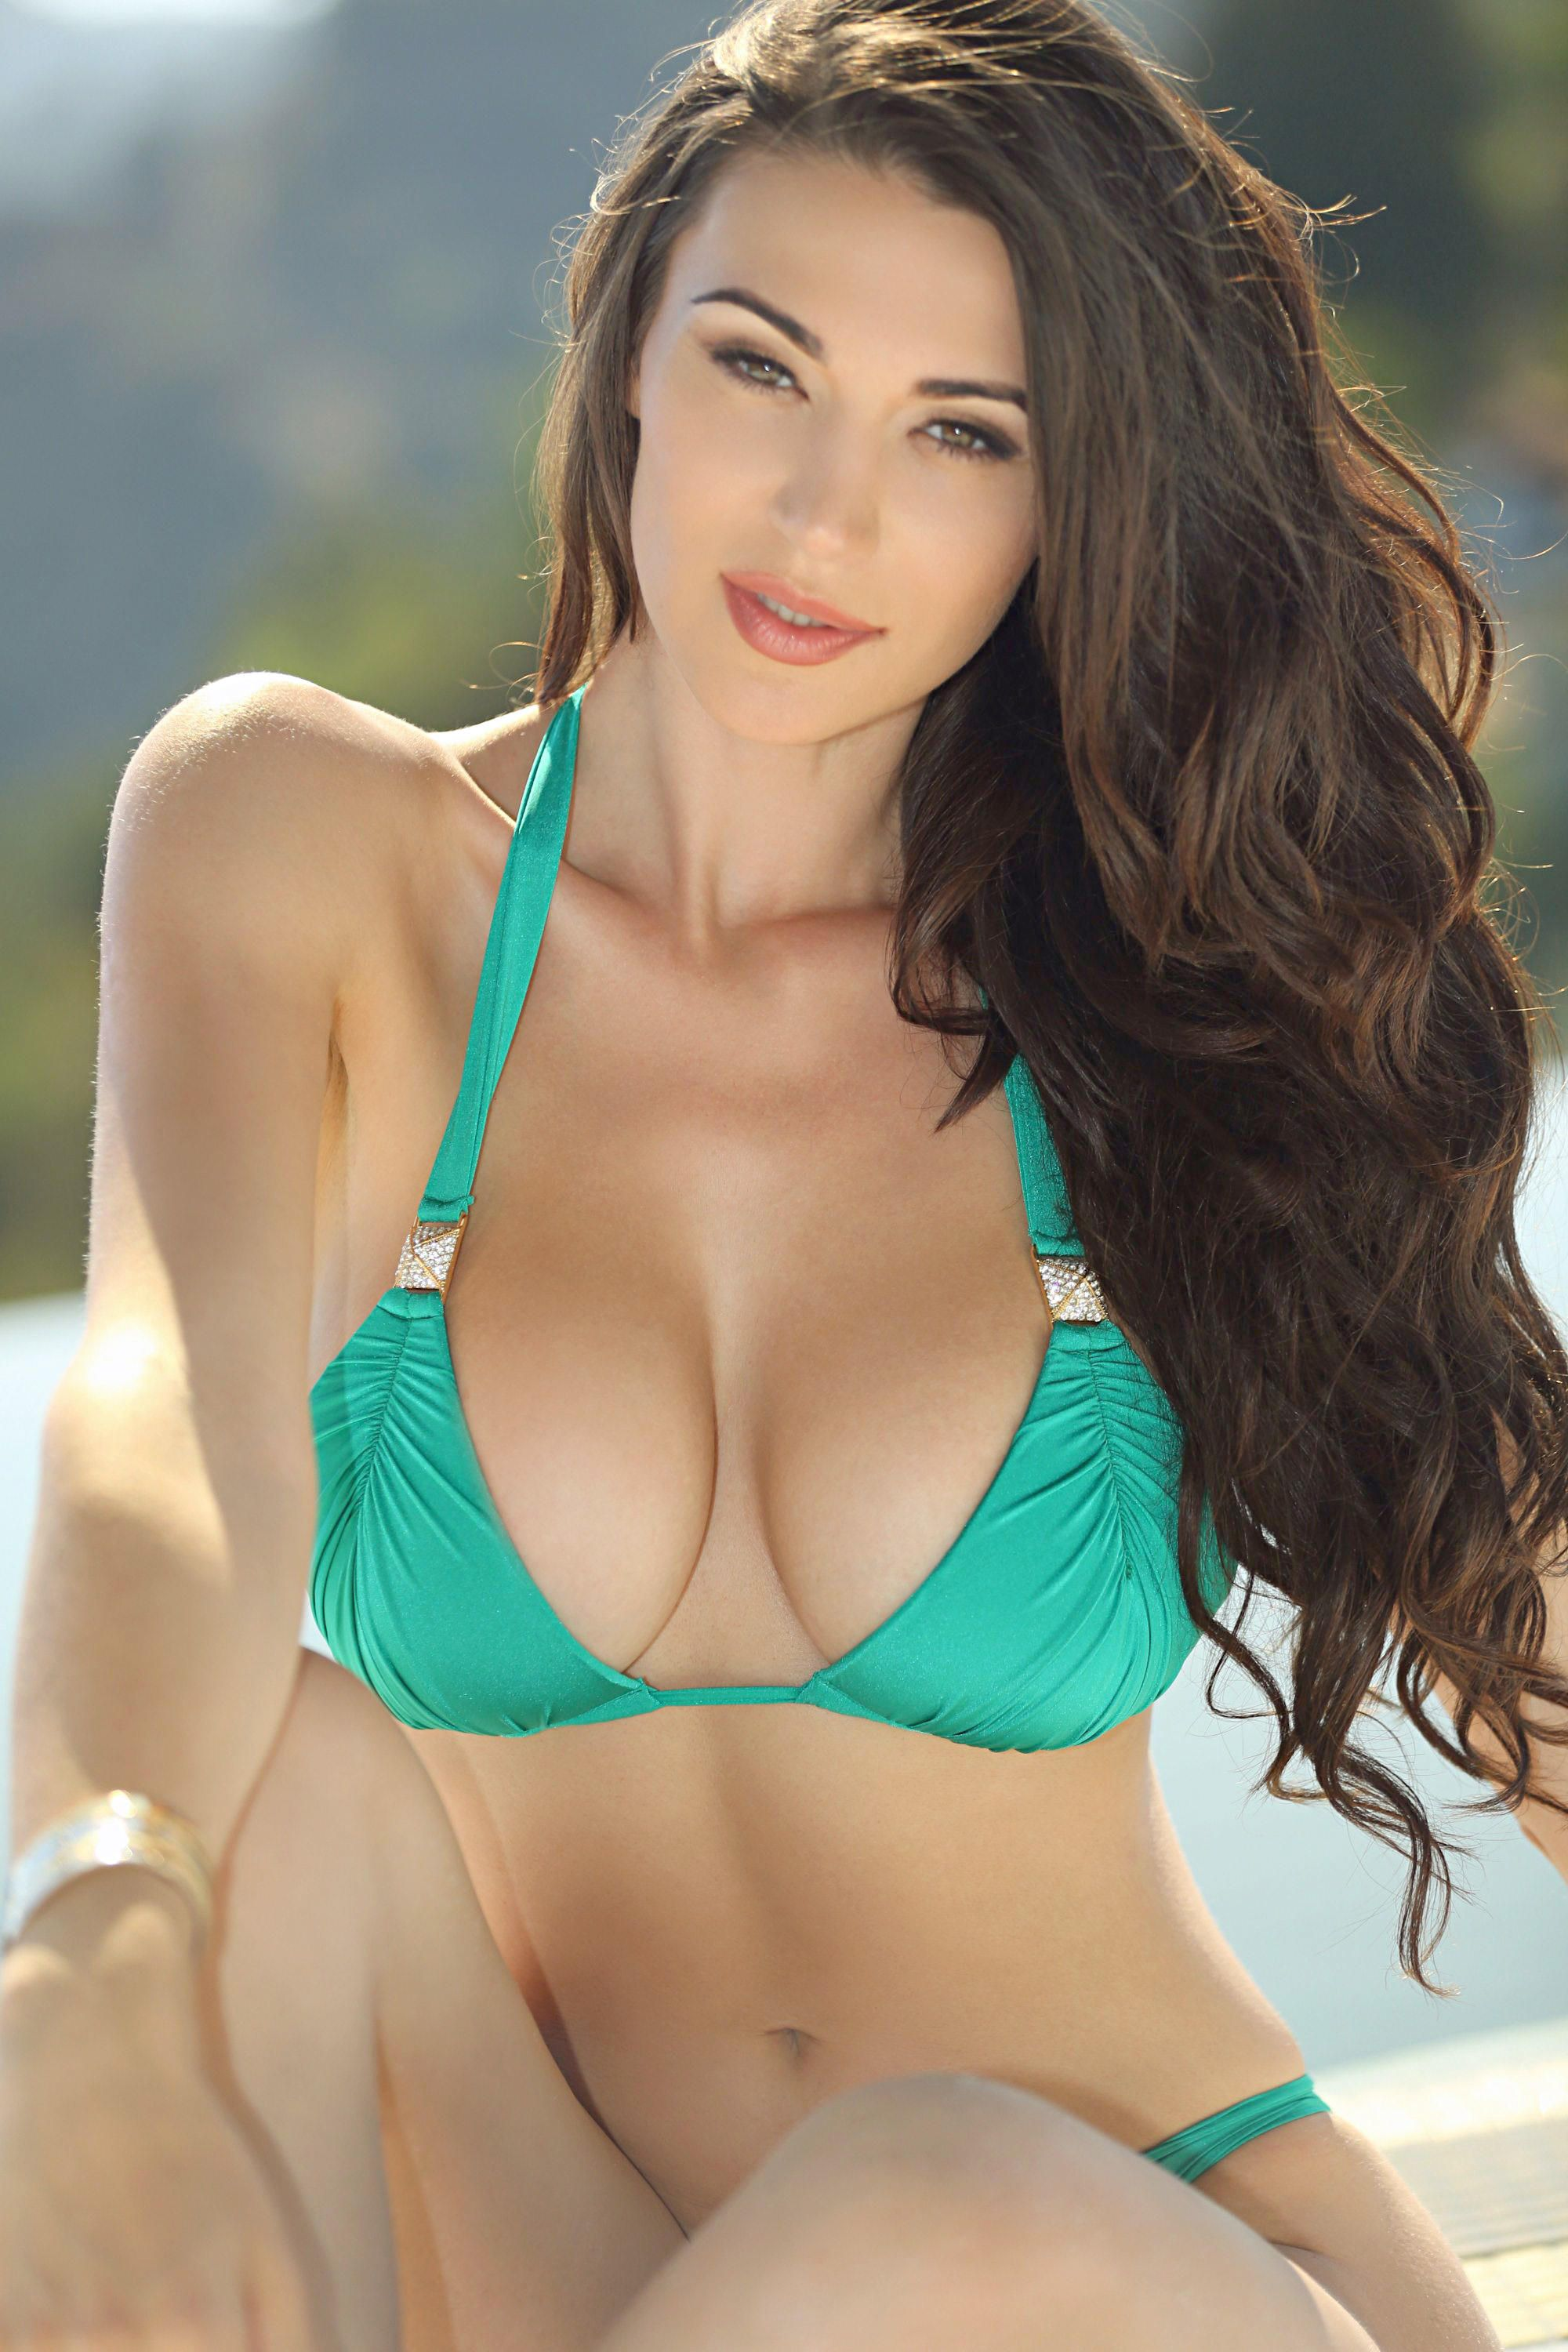 Sexy Photos Of Jenna Jenovich Thefappening